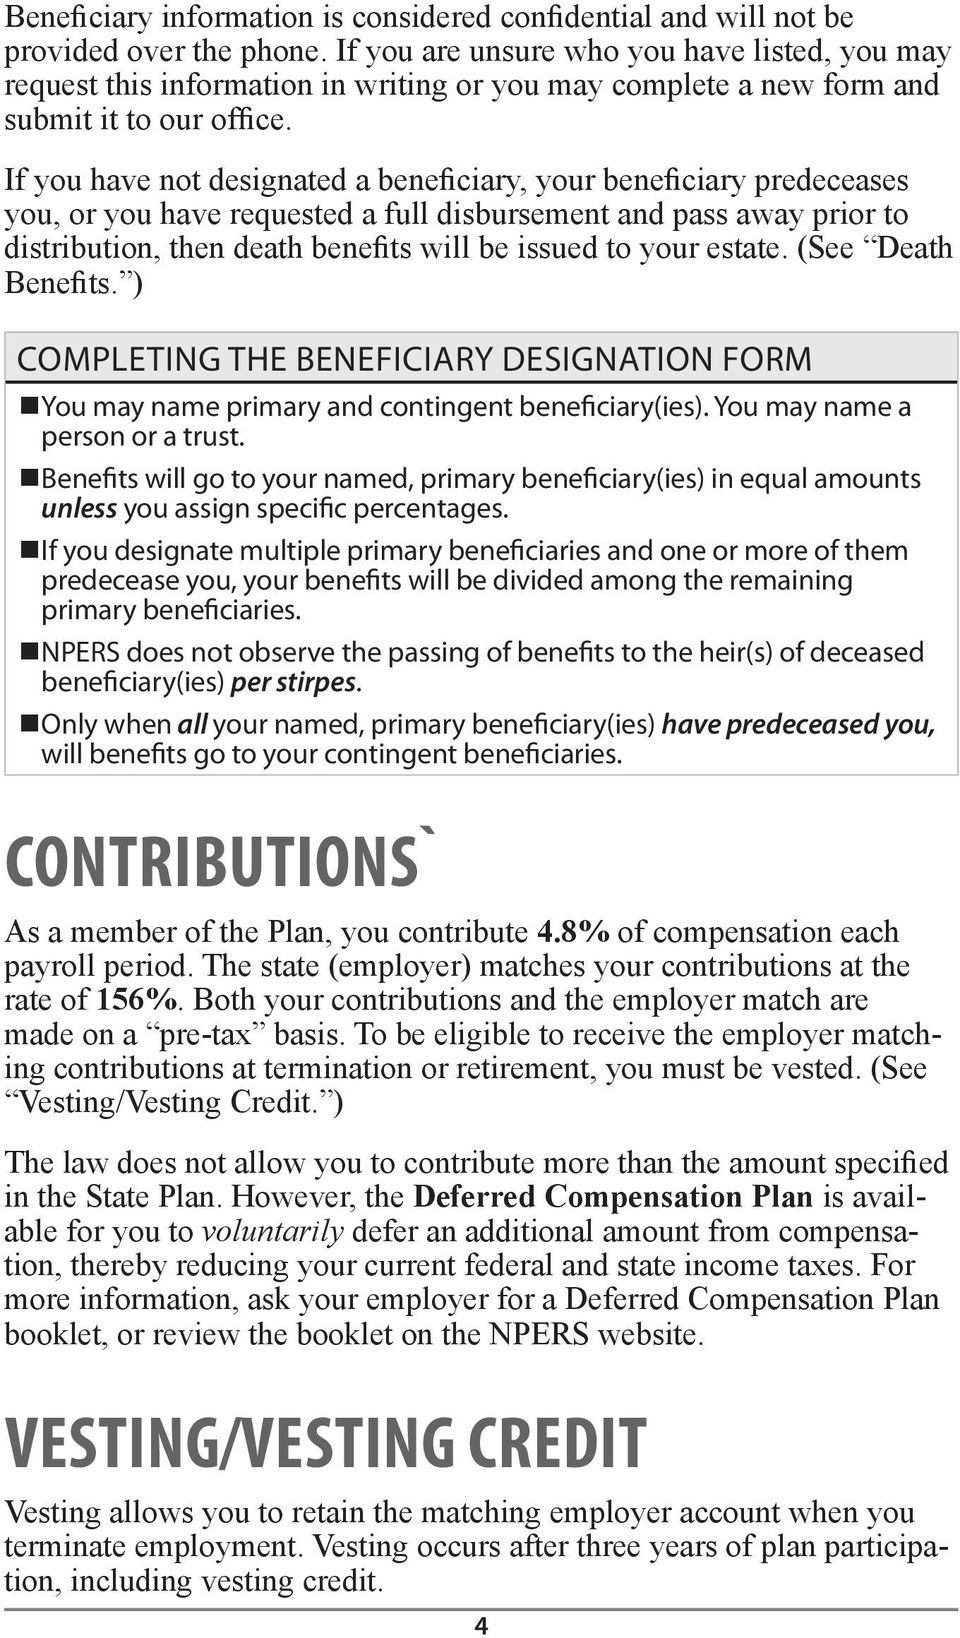 If you have not designated a beneficiary, your beneficiary predeceases you, or you have requested a full disbursement and pass away prior to distribution, then death benefits will be issued to your